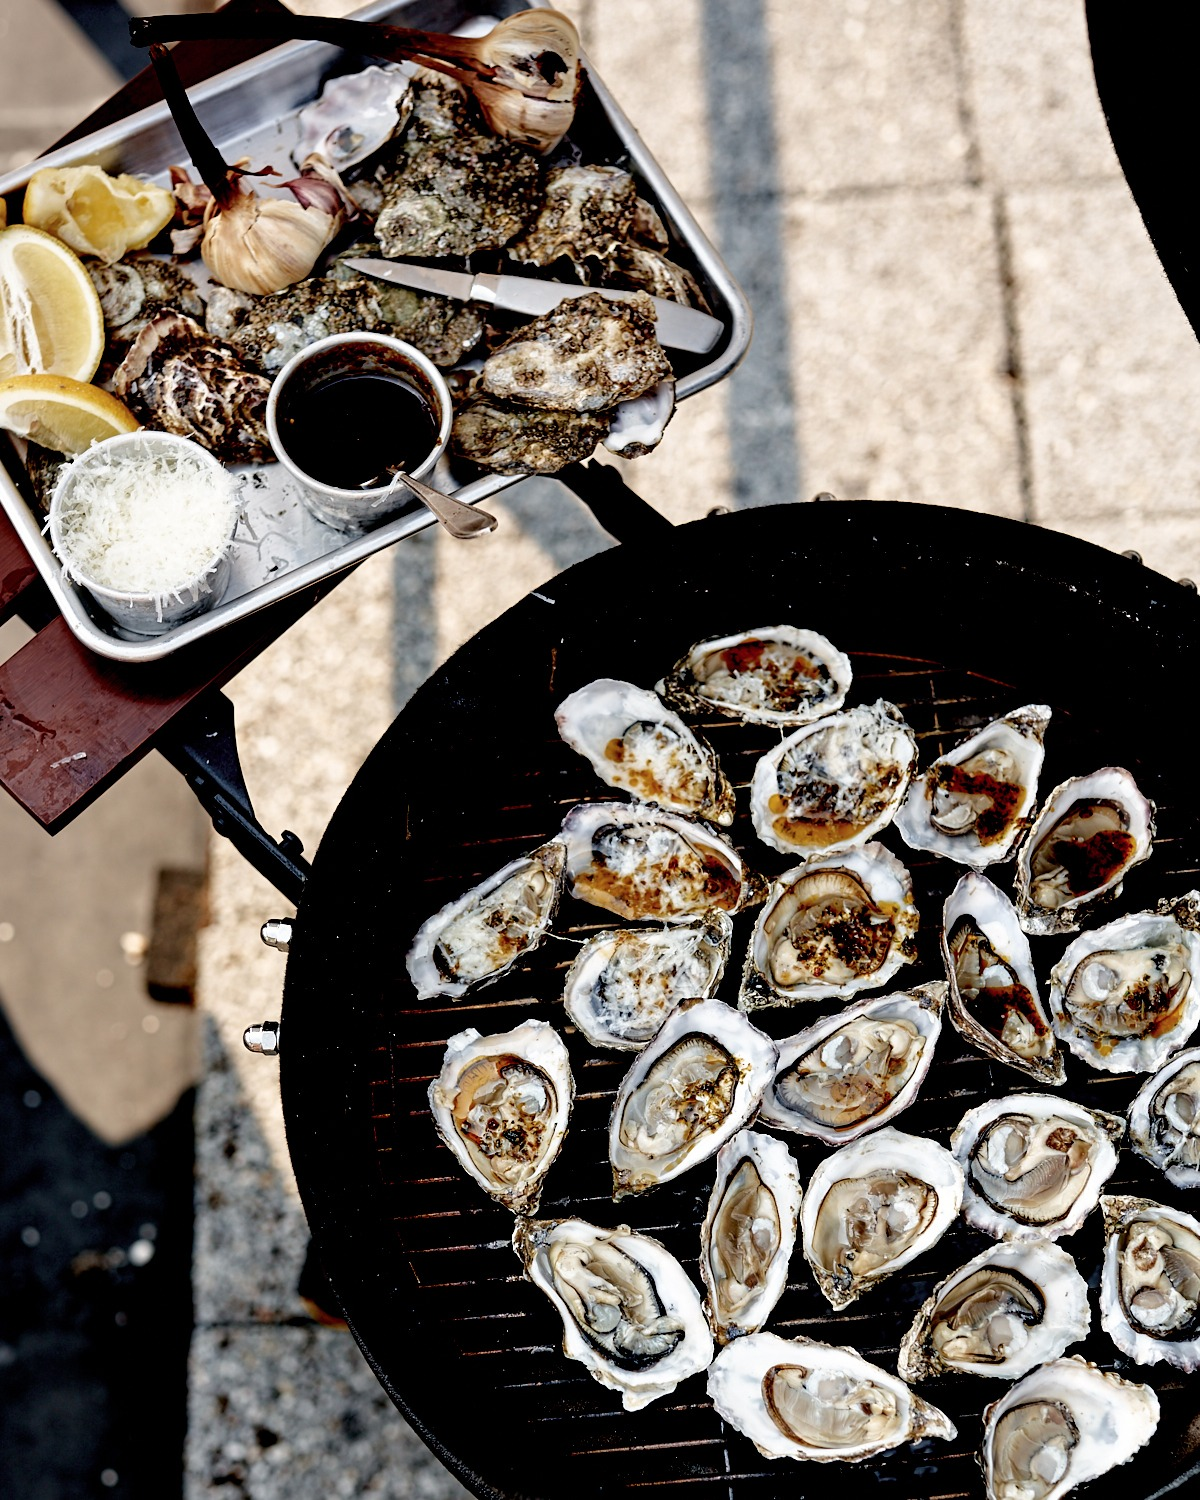 Oesters_PHOTO-2018-05-29-10-45-59